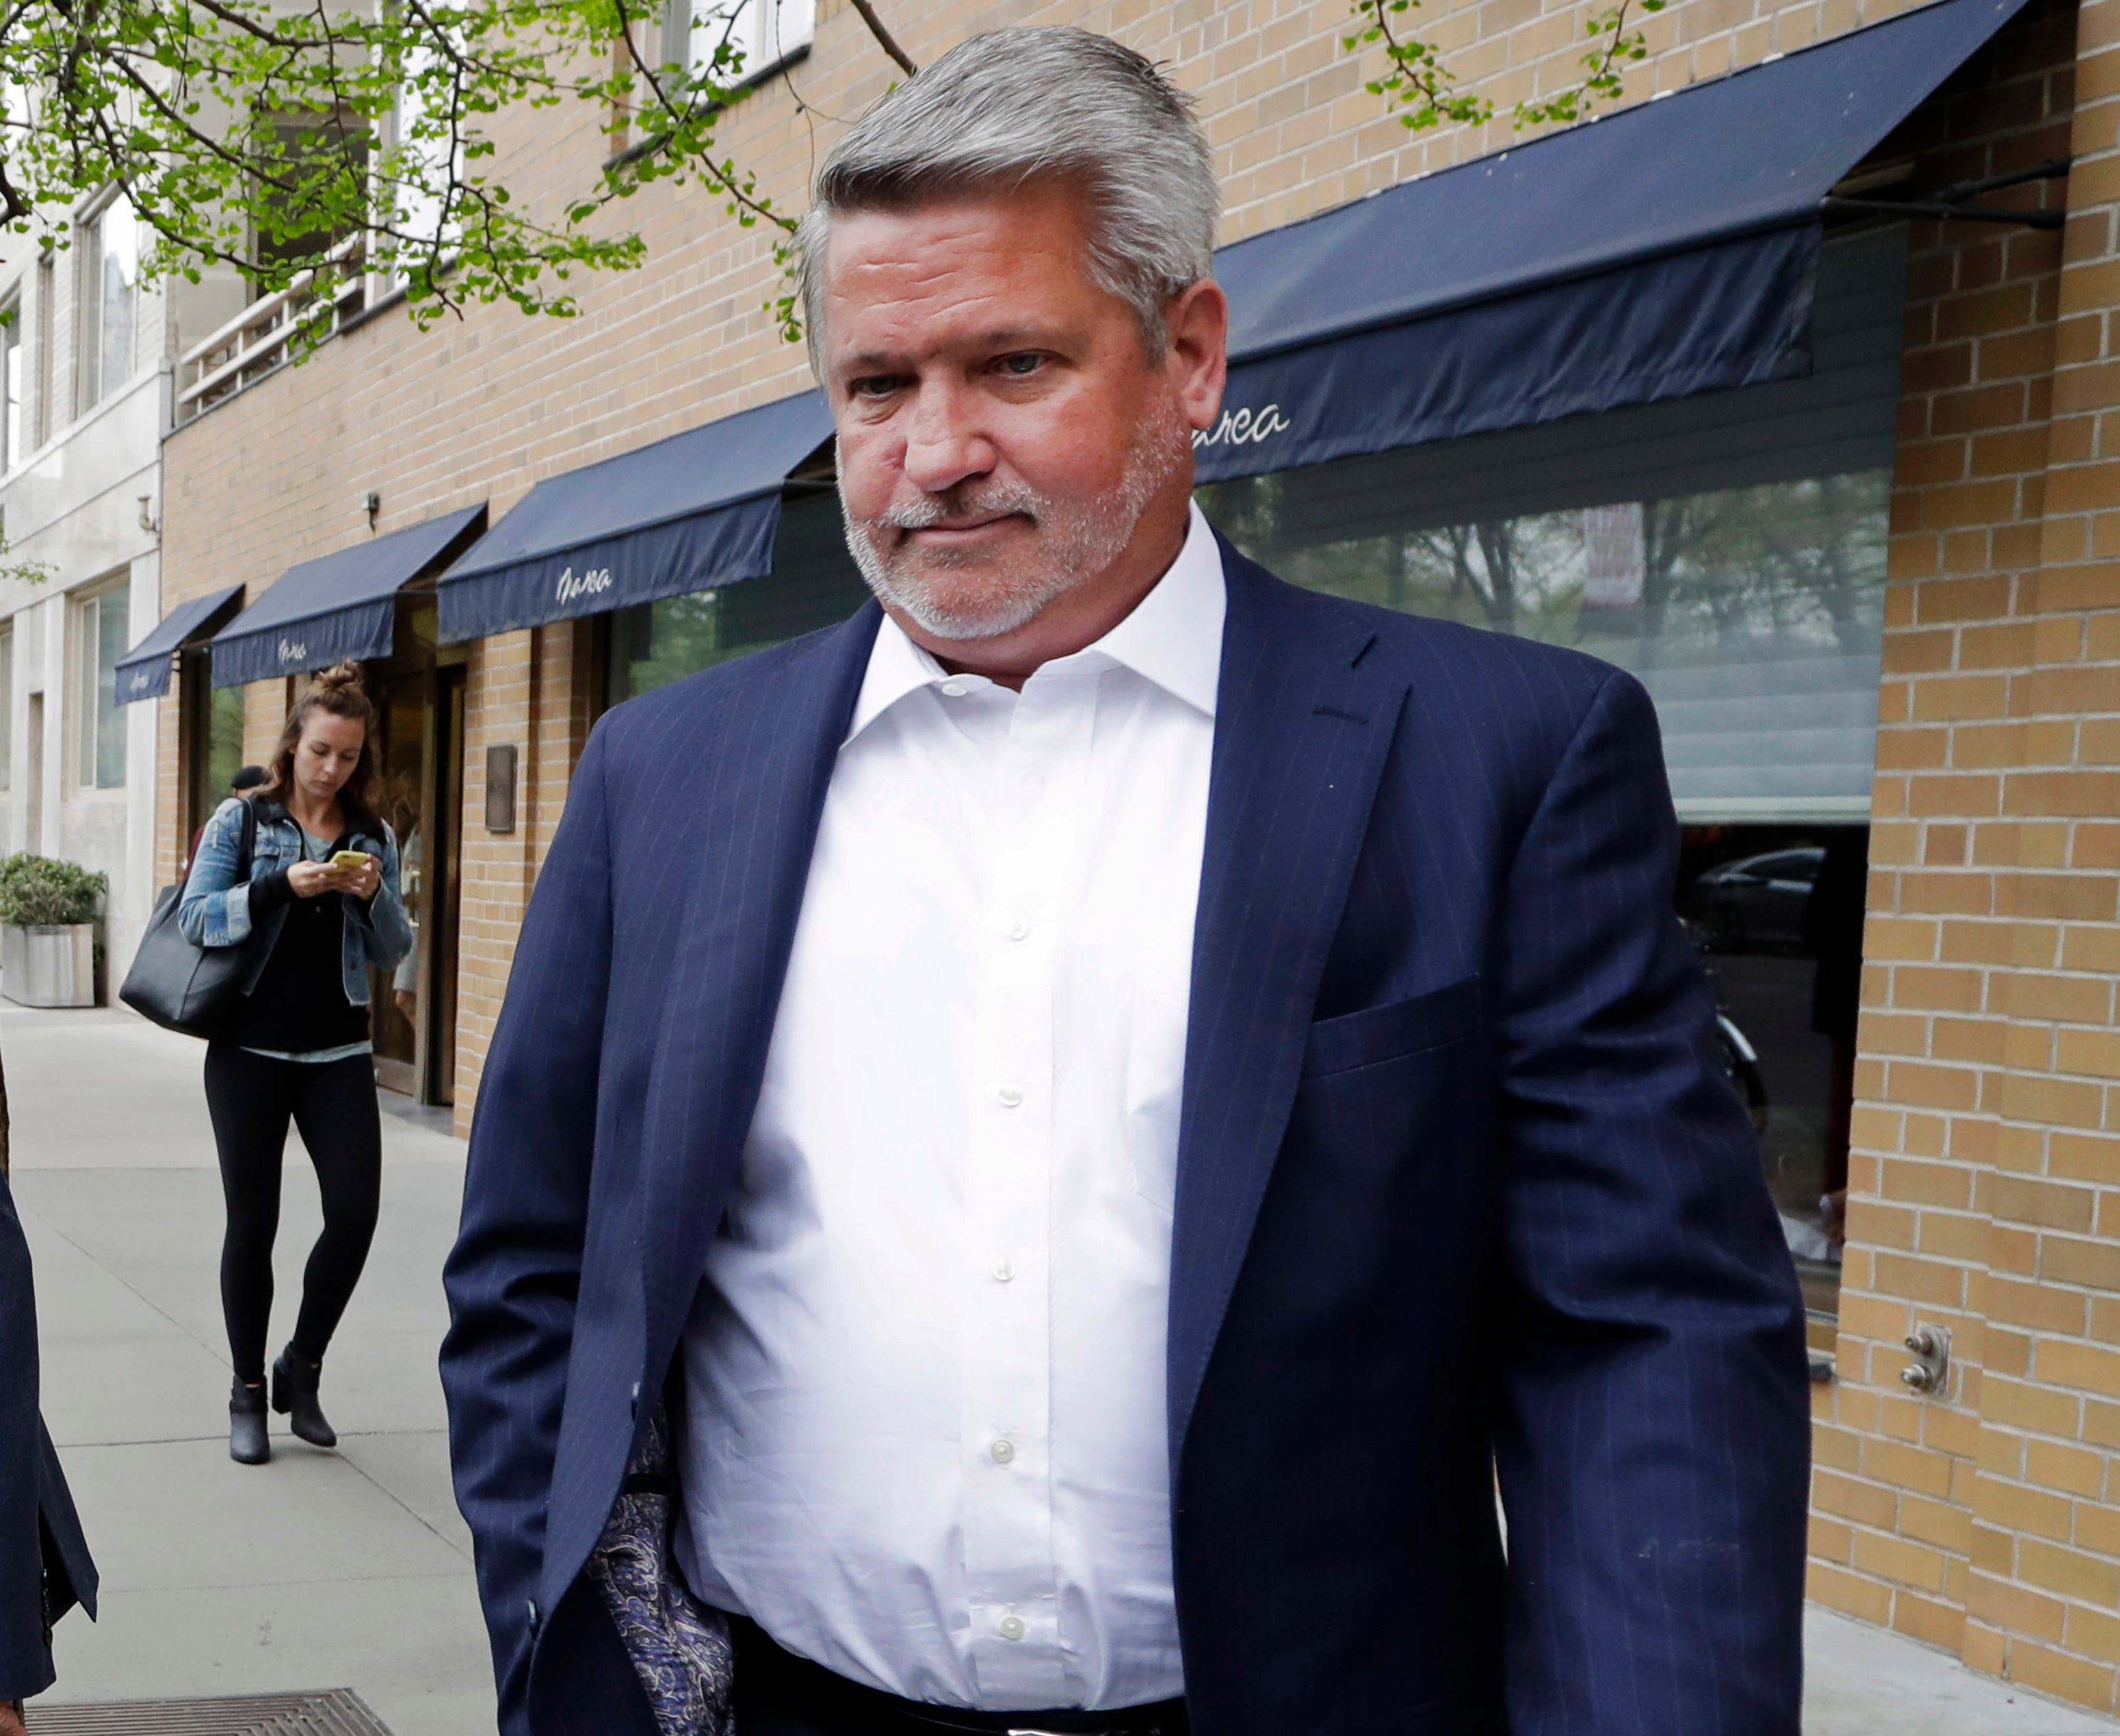 Bill Shine got $15 million payout from Fox News before taking White House job, report says